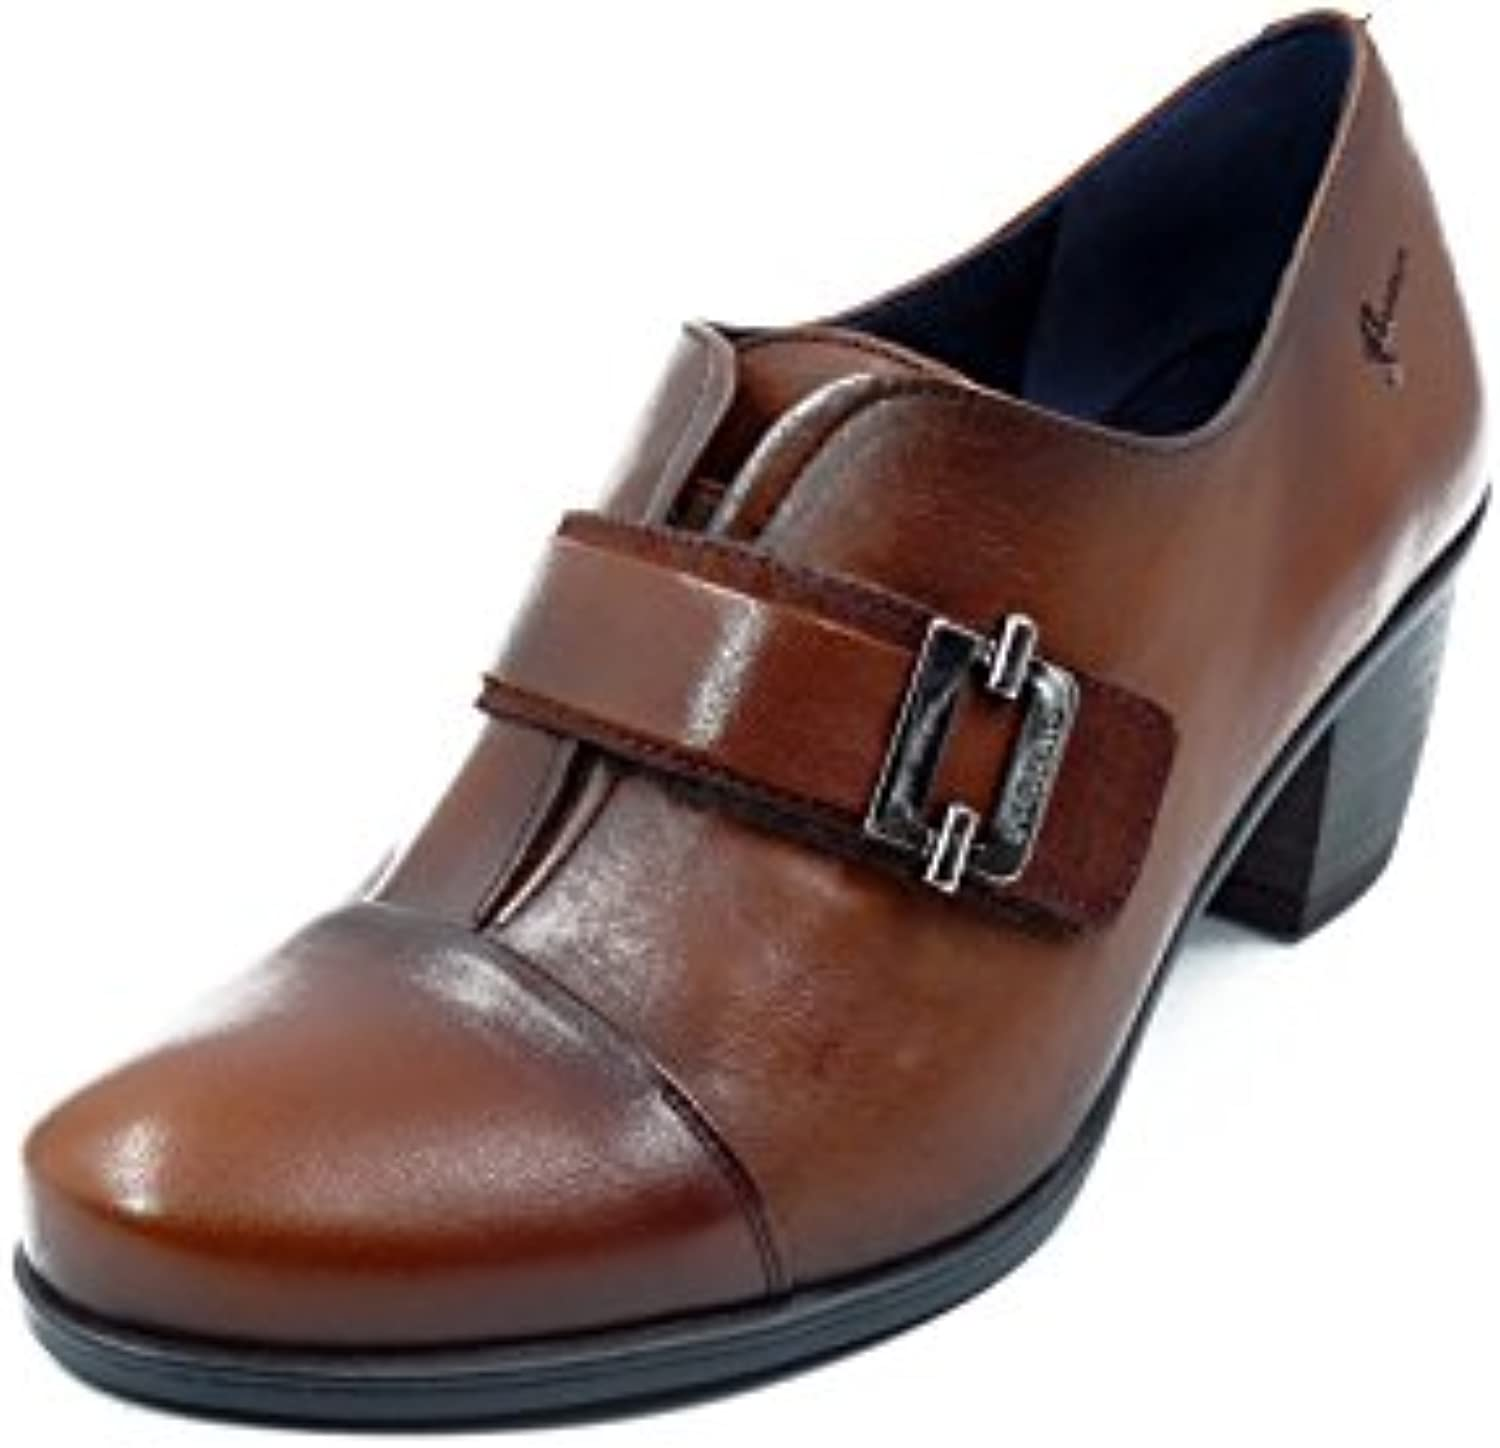 61b9de419c0a Man s Woman s Fluchos Women s Women s Women s Shoes B0768JBRZC Parent Wear  resistant Clearance Outstanding function 0a7edf